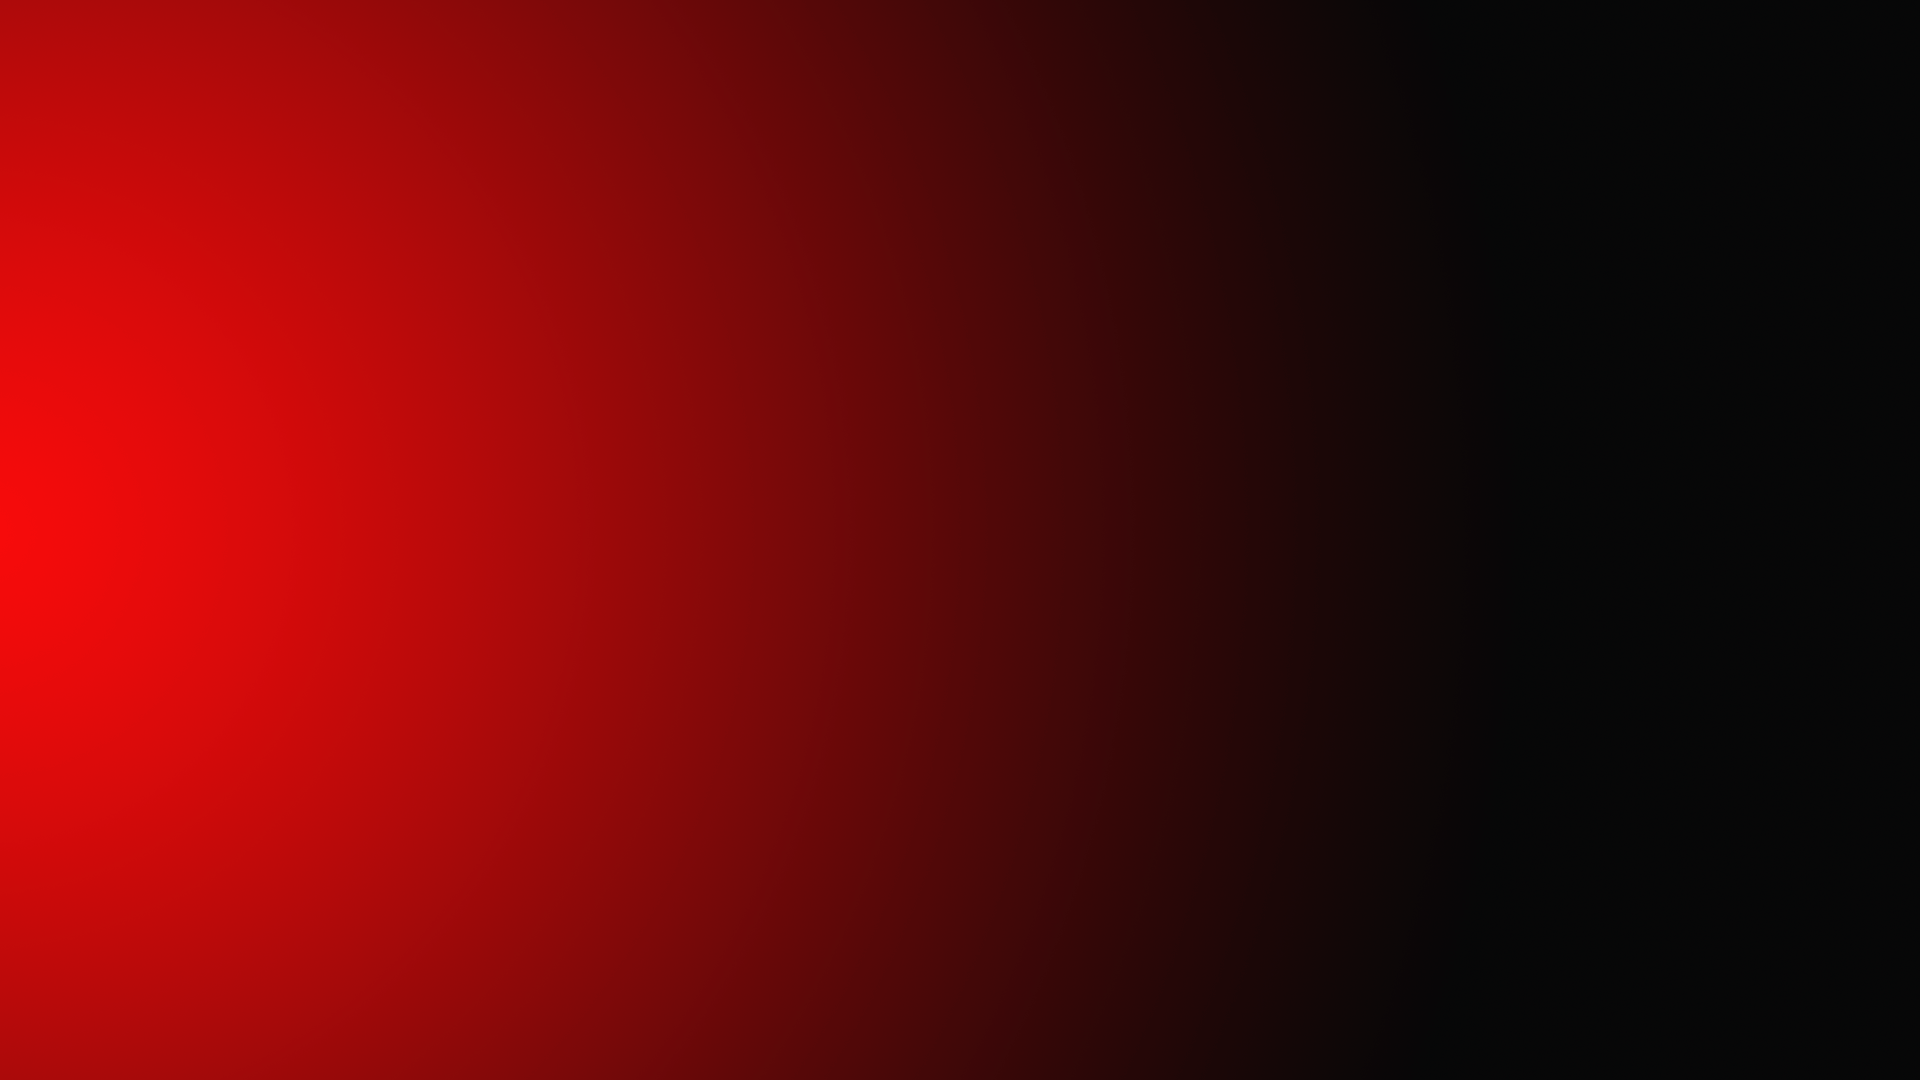 Black And Red >> Black And Red Backgrounds Wallpaper Cave